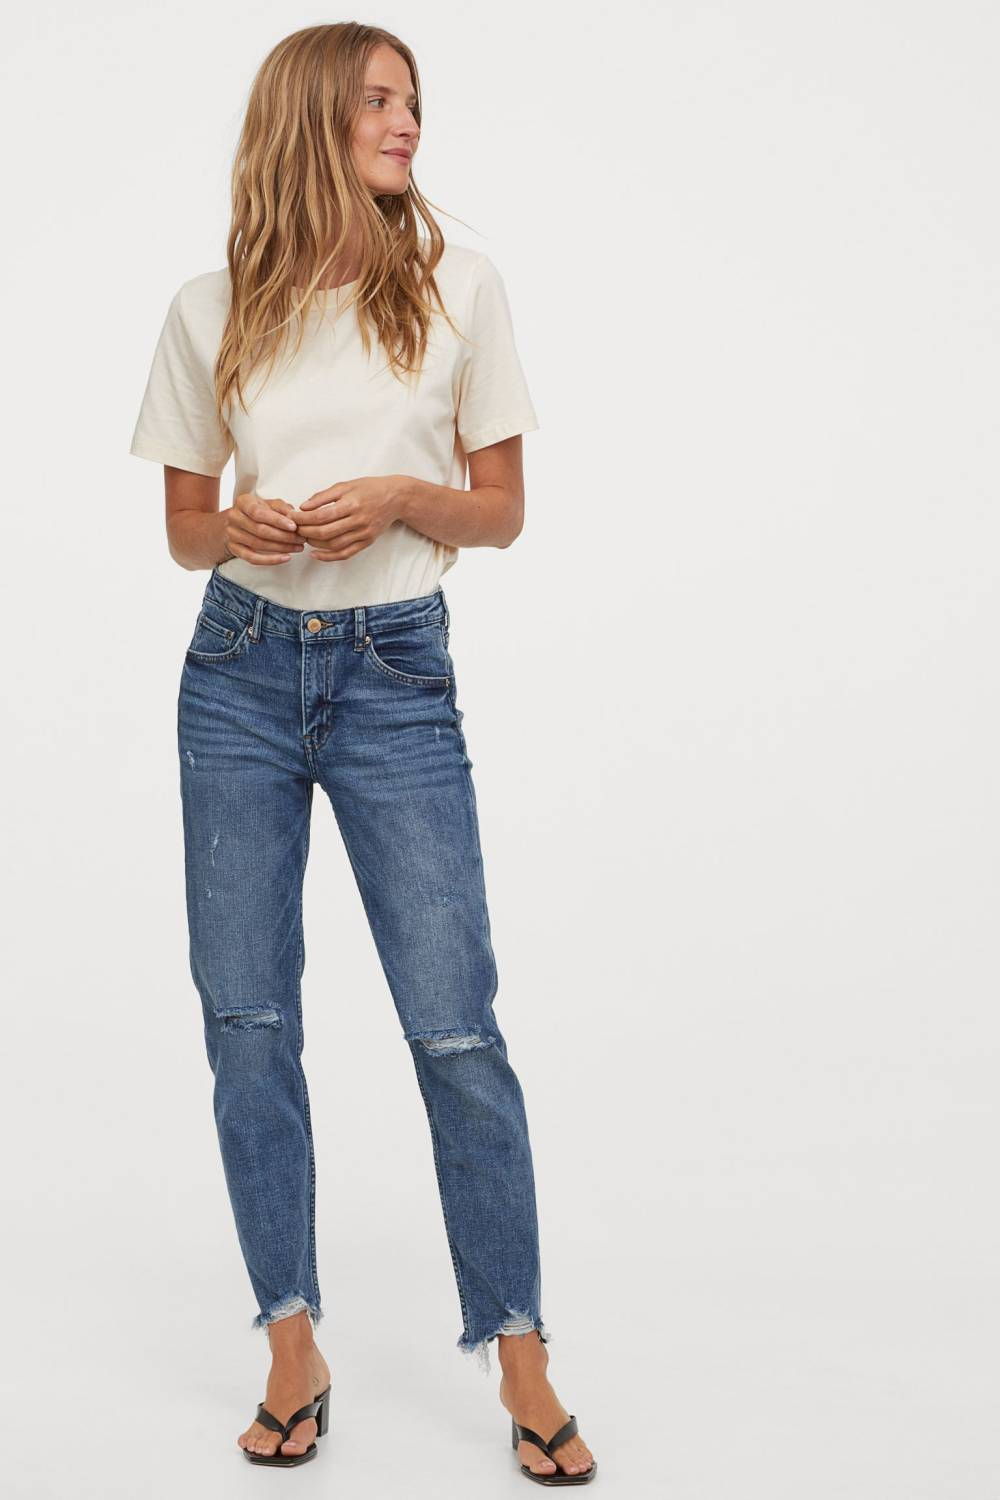 h&m recycled cotton denim jeans